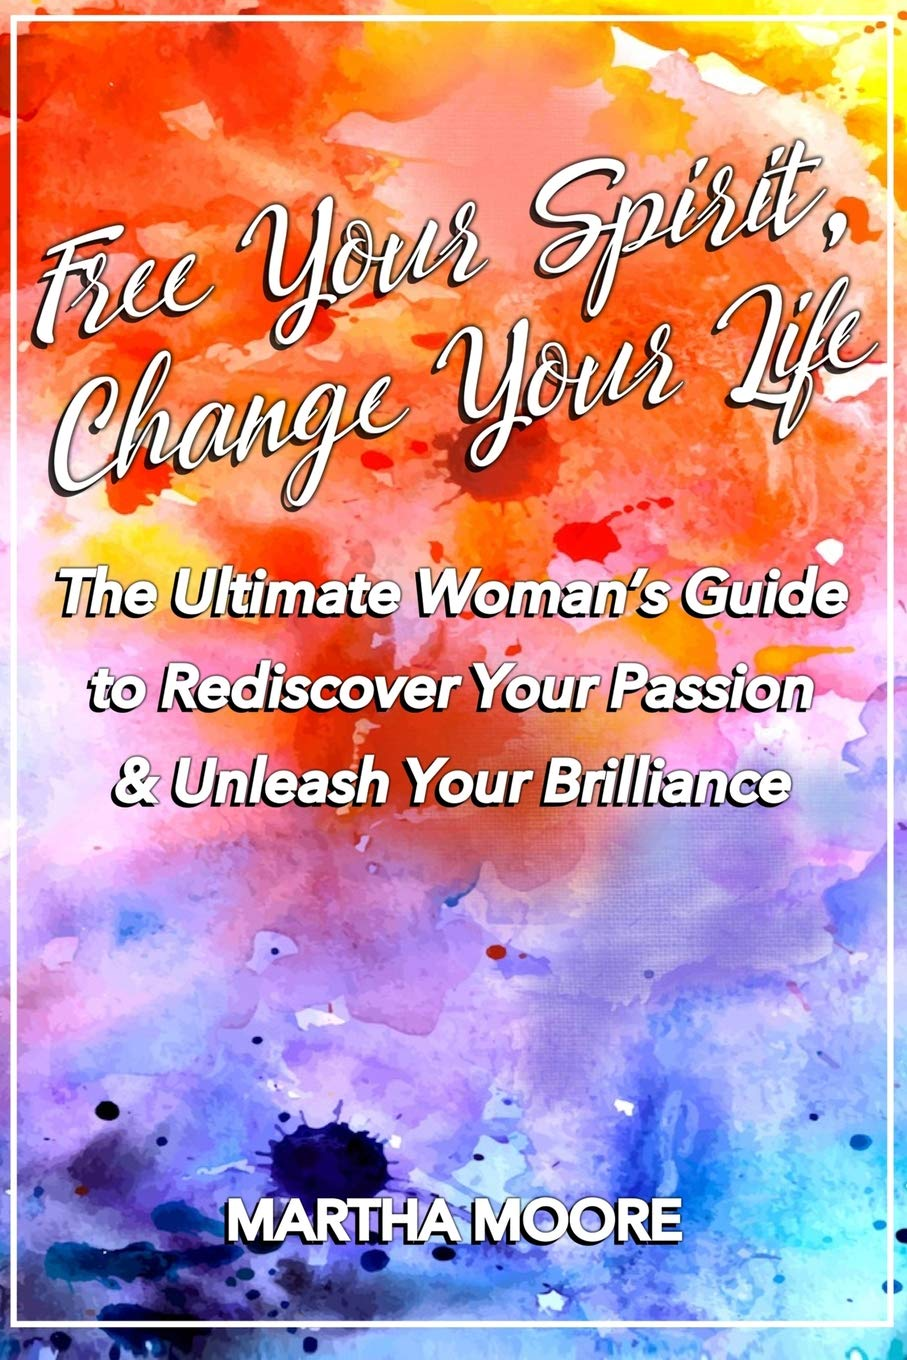 Download Free Your Spirit, Change Your Life: The Ultimate Woman's Guide to Rediscover Your Passion & Unleash Your Brilliance pdf